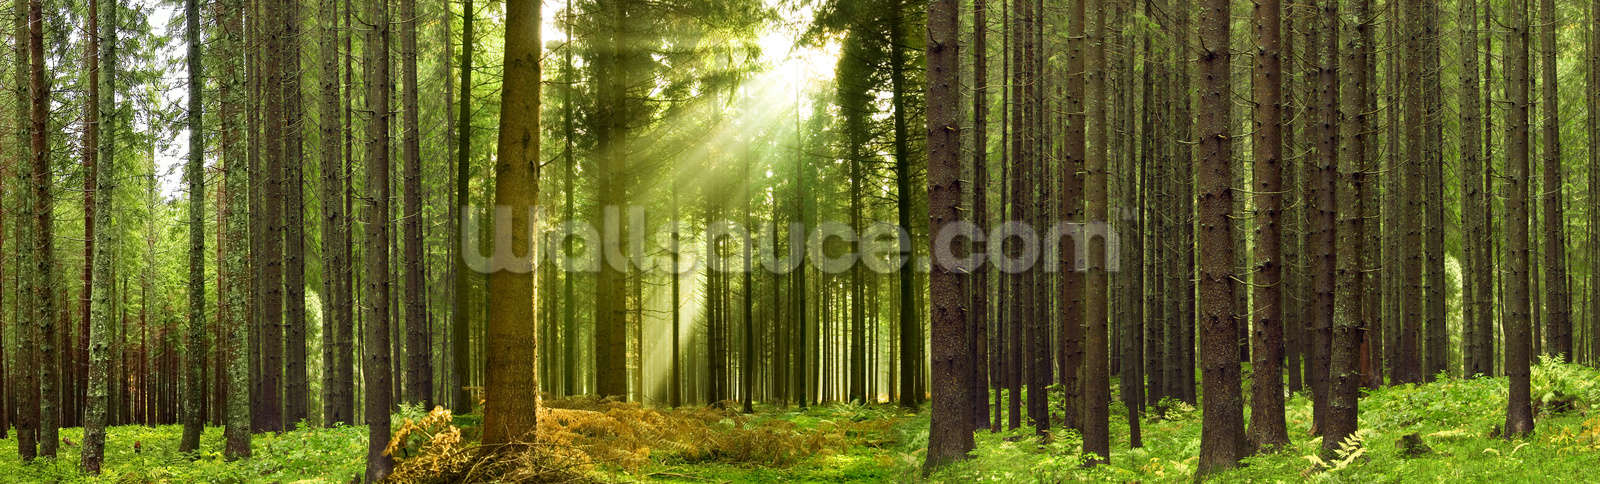 panoramic woodland wallpaper mural wallsauce uspanoramic woodland wallpaper mural